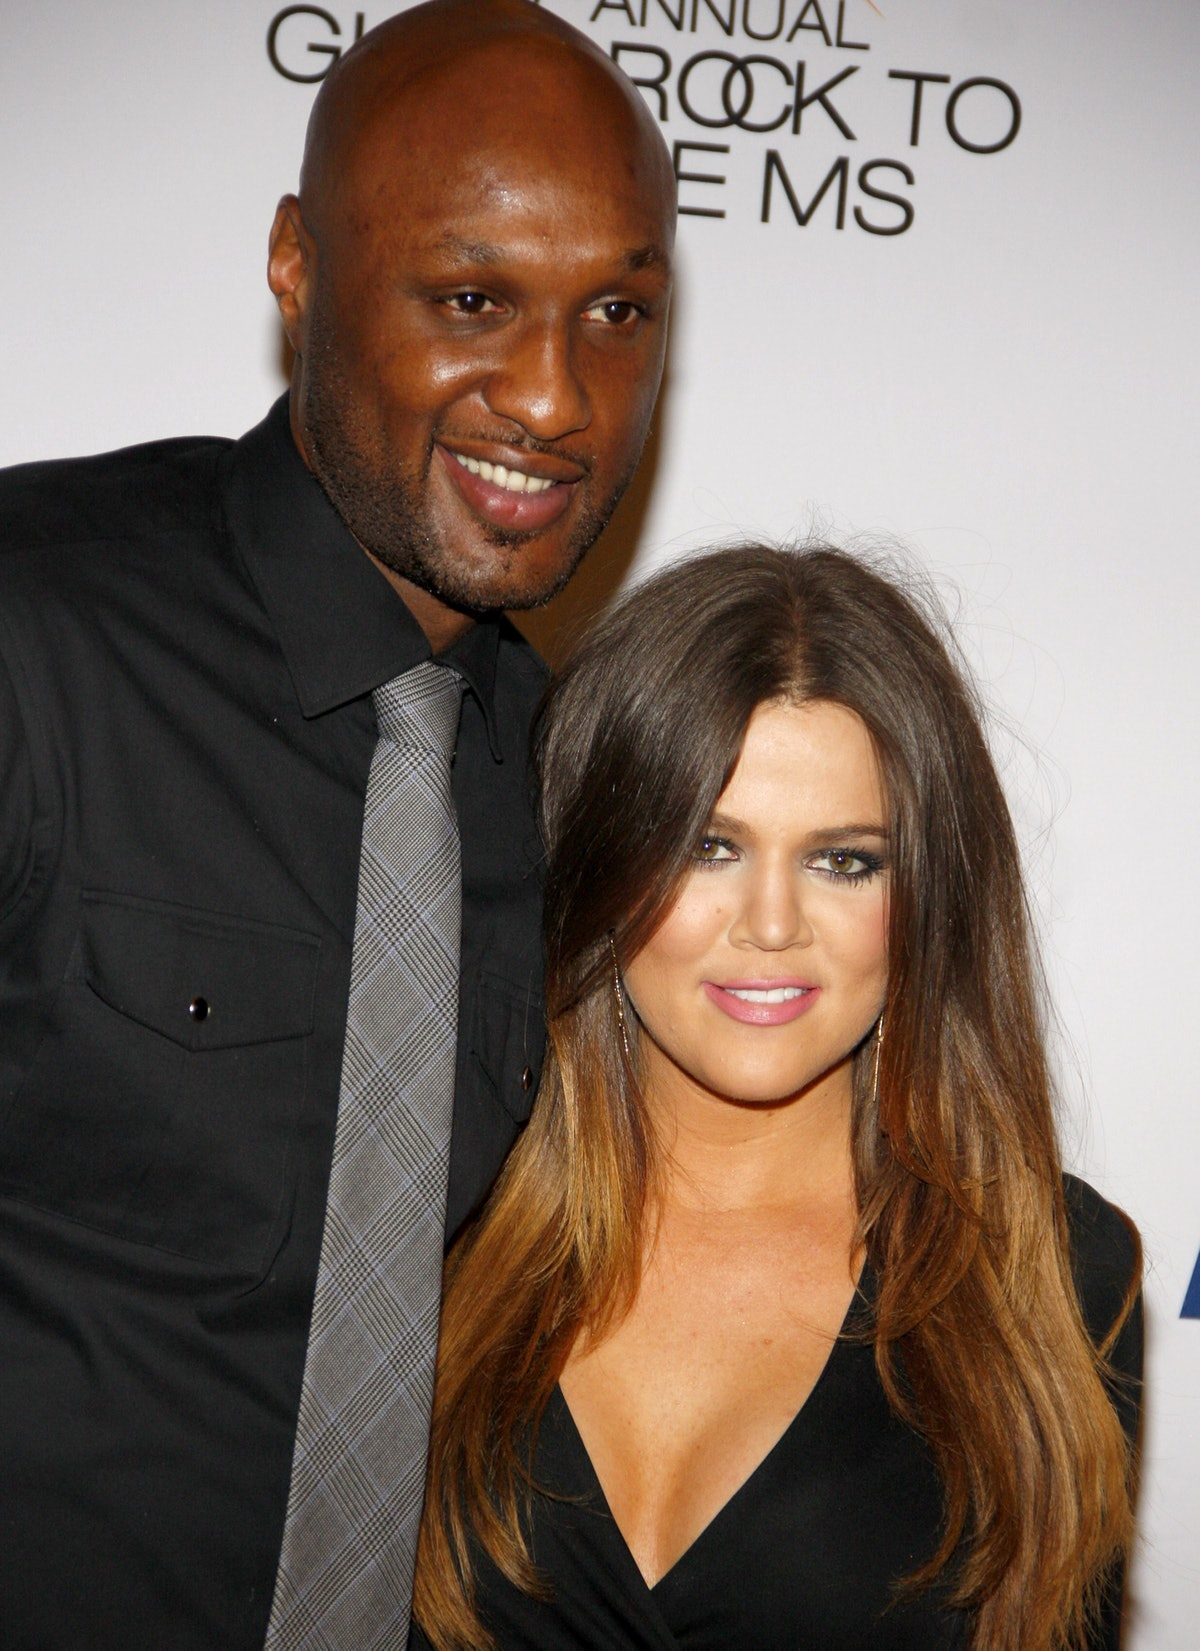 LOS ANGELES, USA - MAY 18: Lamar Odom and Khloe Kardashian at the 19th Annual Race To Erase MS held at the Hyatt Regency Century Plaza, Los Angeles, USA on May 10, 2012. (Photo by Christian JENTZ/Gamma-Rapho via Getty Images)